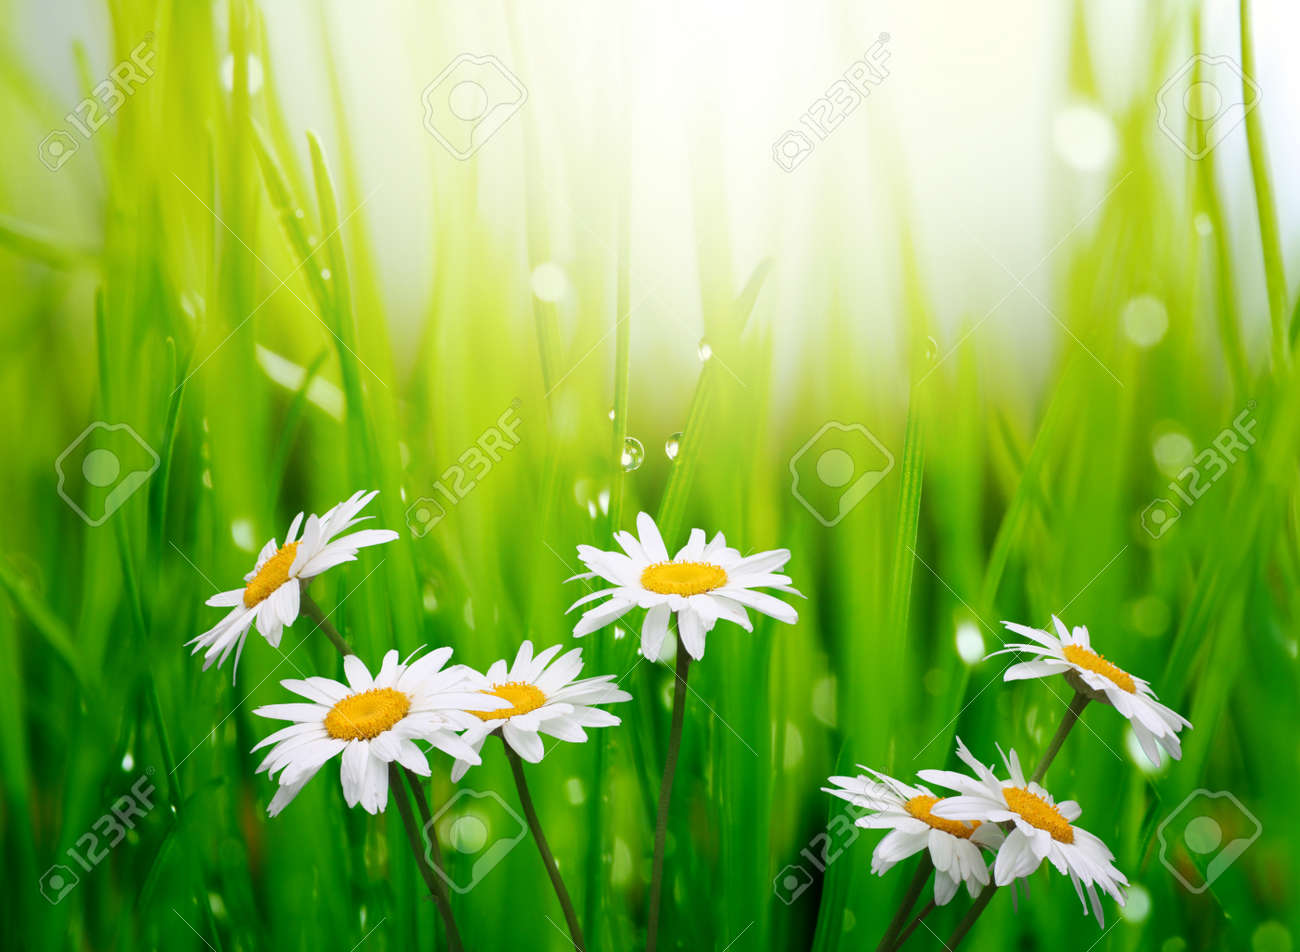 grass field background with flowers. Chamomile In Green Grass Stock Photo - 9239717 Field Background With Flowers A